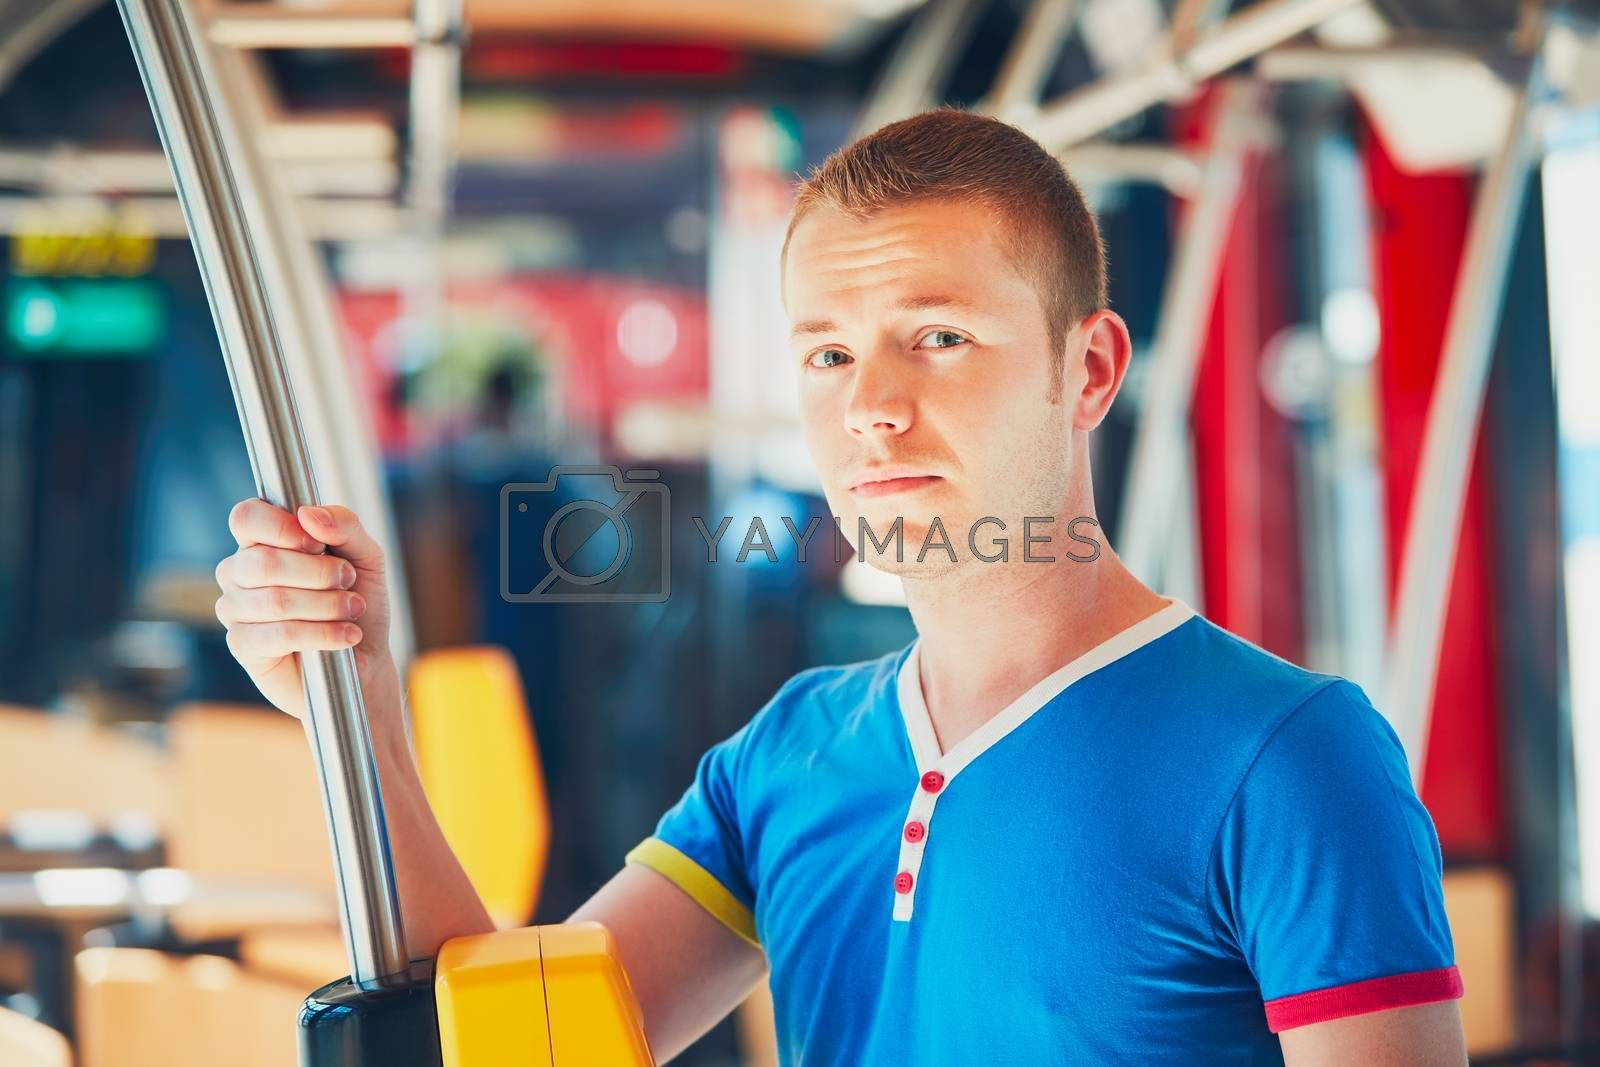 Everyday life and commuting to work by public transportation. Handsome young man is traveling by bus (tram).